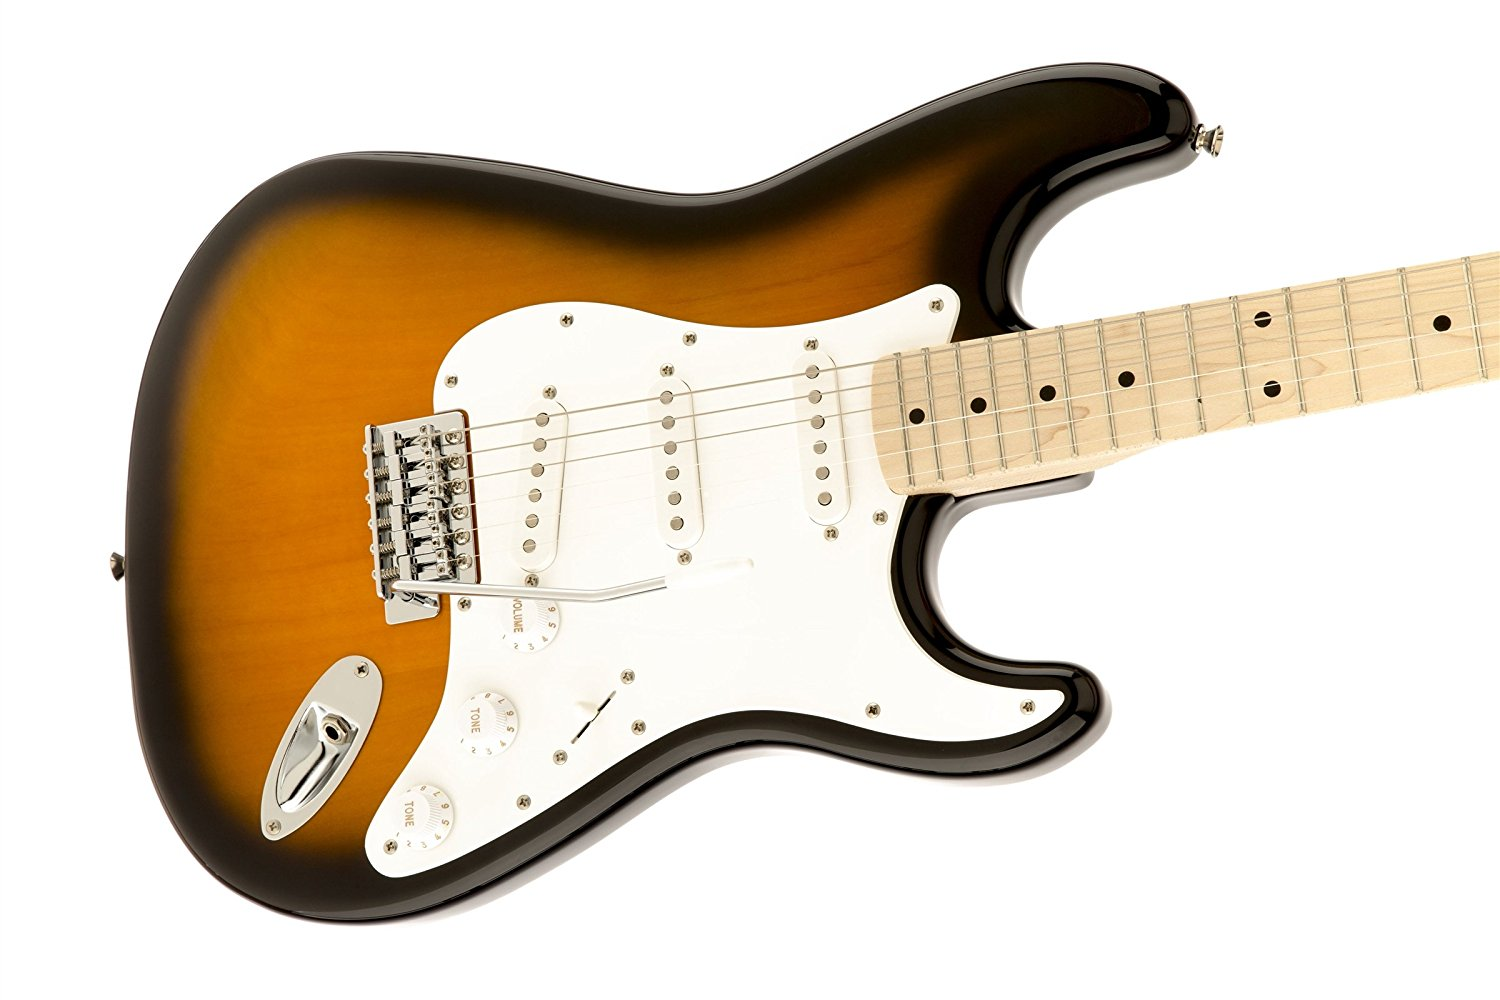 Comfortable Stratocaster 5 Way Switch Diagram Tiny Bulldog Remote Starter Installation Square Ibanez Gsr100 Bass Ibanez Gio Gax70 Electric Guitar Old Dimarzio 3 Way Switch SoftTsb Automotive 10 Best Electric Guitars For Beginners Under $200 | Spinditty